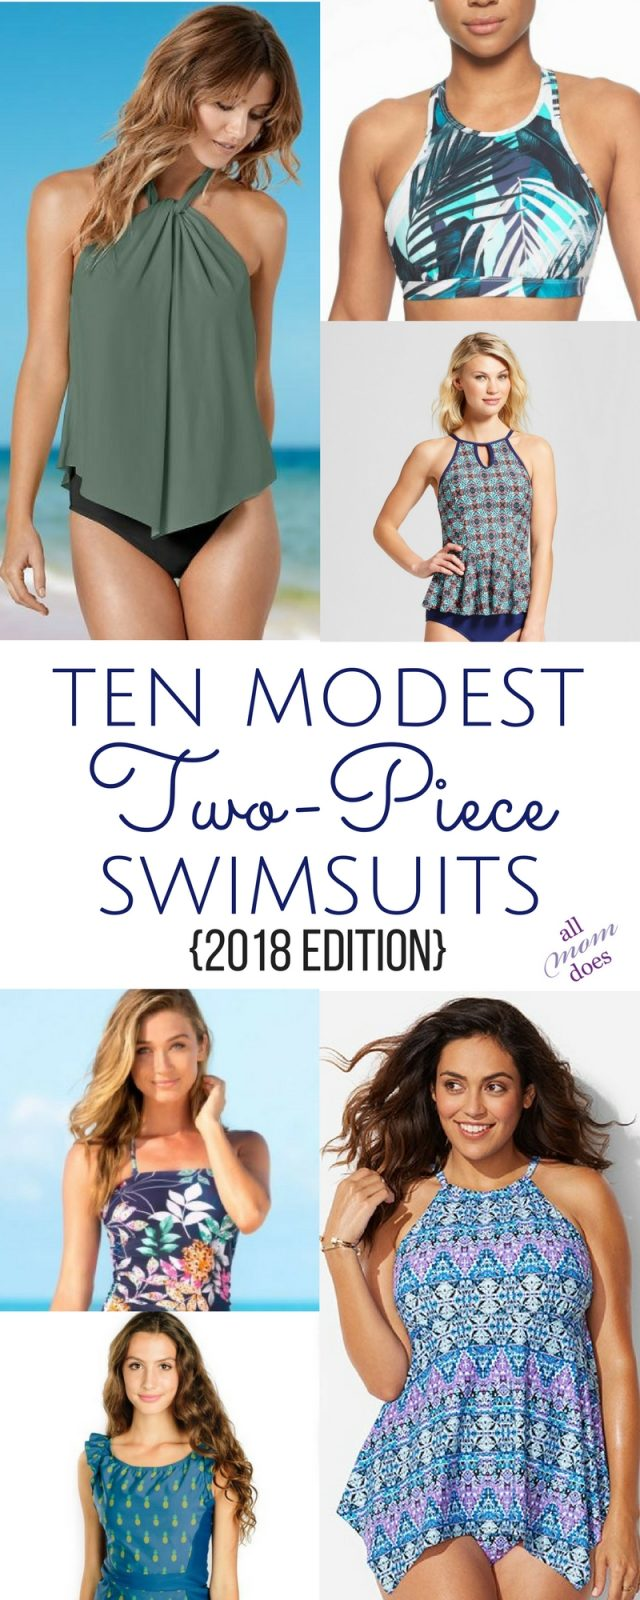 Bikinis and Tankinis that still offer coverage. Modest two-piece swimsuits! #swimsuits #bikini #modesty